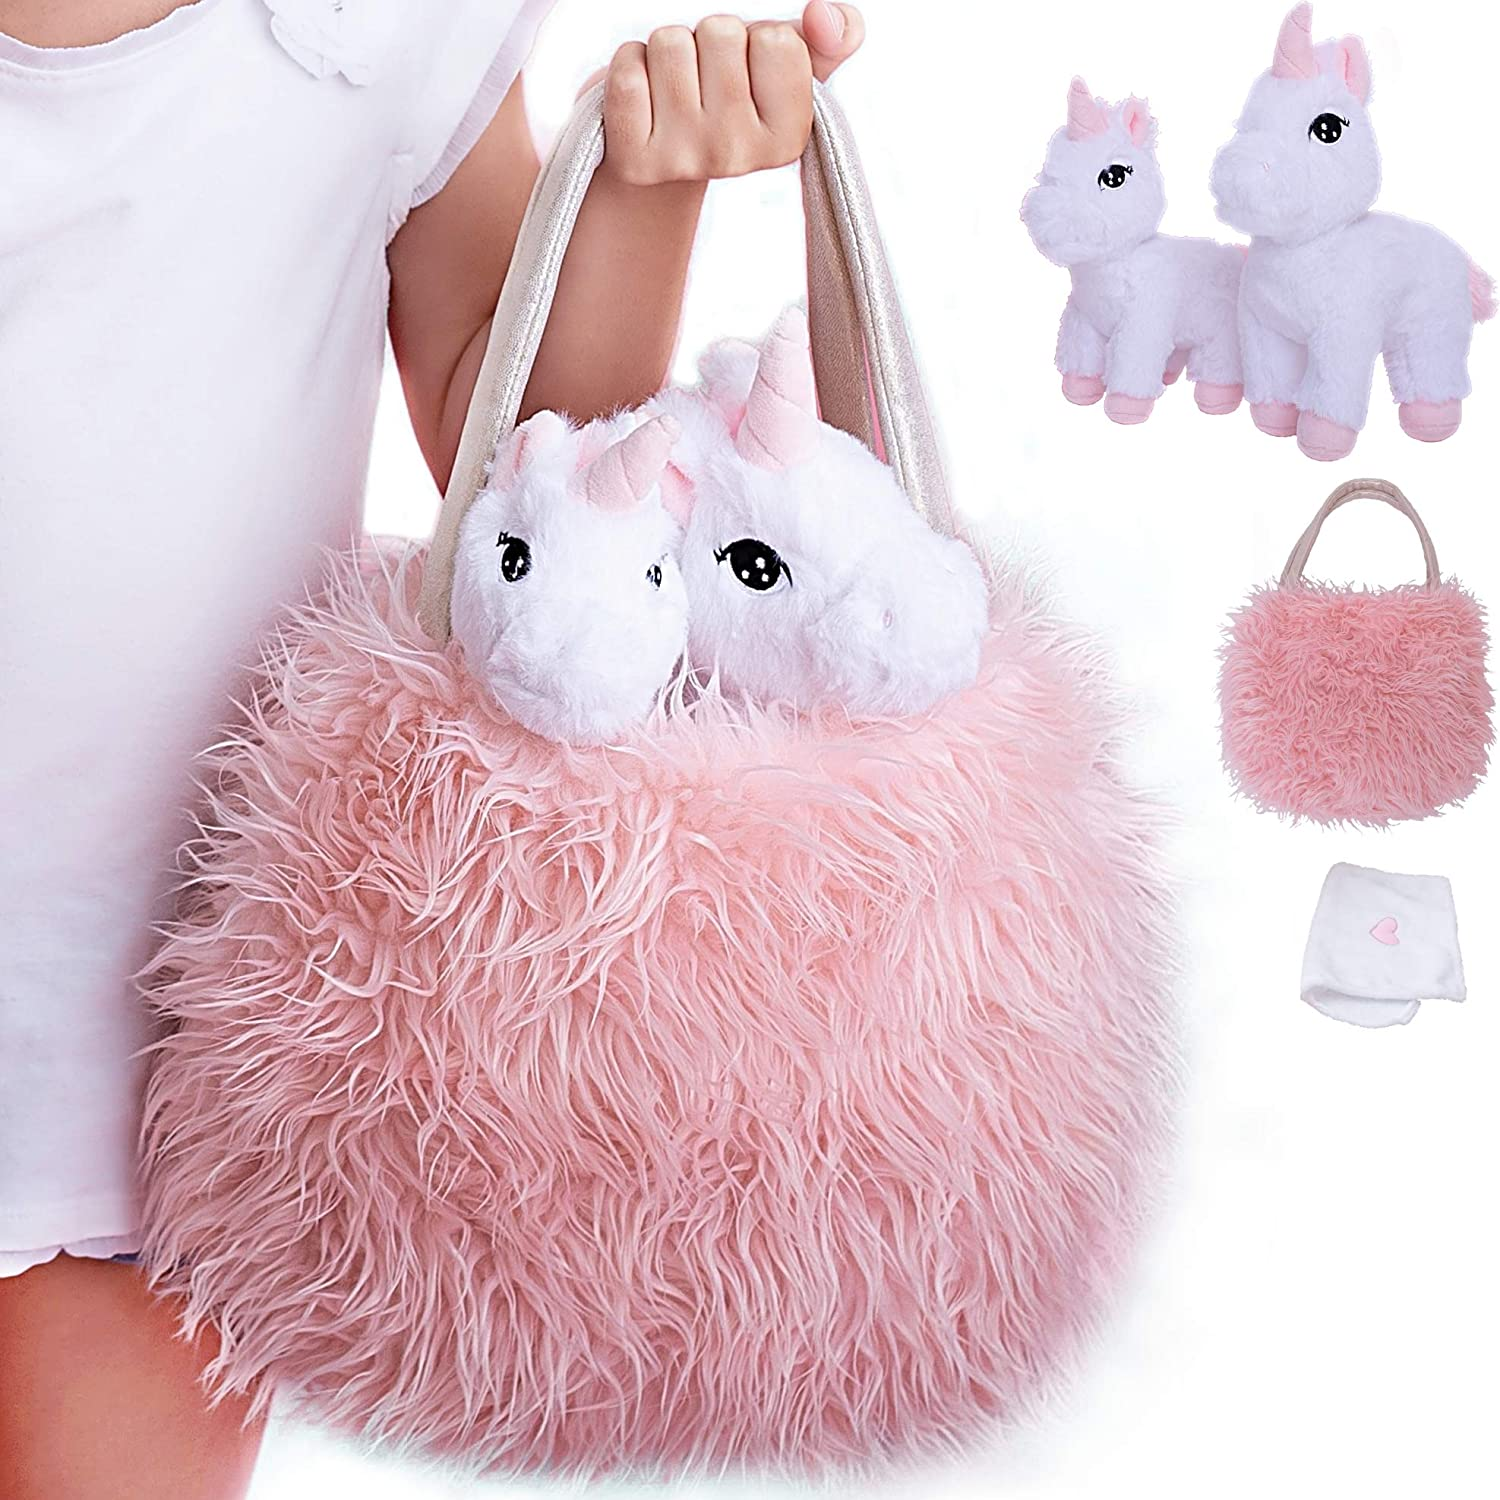 Unicorn Gift for Girls 4 Pcs Over item handling ☆ 2021 XL Mommy Set. and Baby Toy